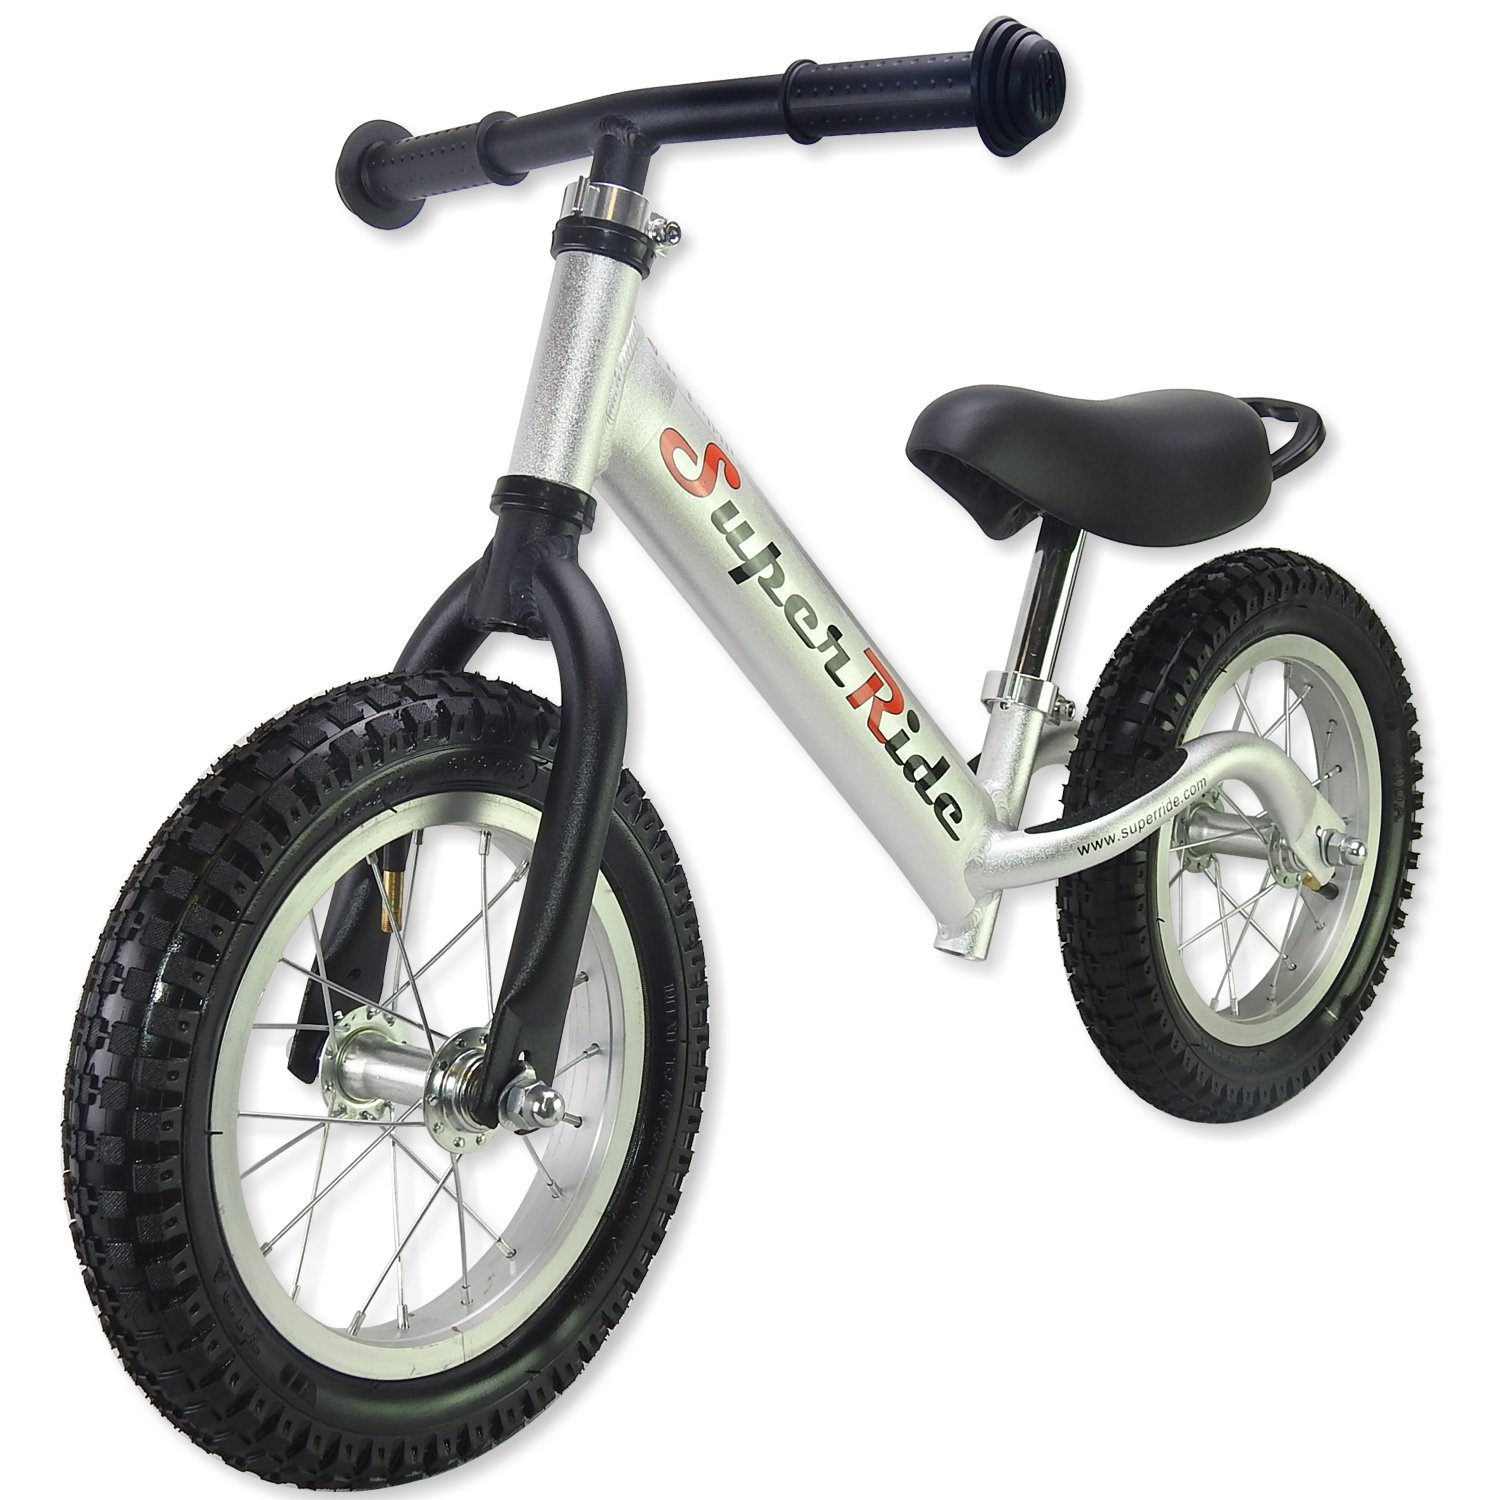 Superride Balance Bike for Kids & Toddlers - Full Aluminum Frame & Rim - Adjustable Seat & Handlebar for 2 3 4 5 & 6 Years Old Boy and Girl - No Pedal Lightweight Push Bicycle - Offroad Inflated Tires